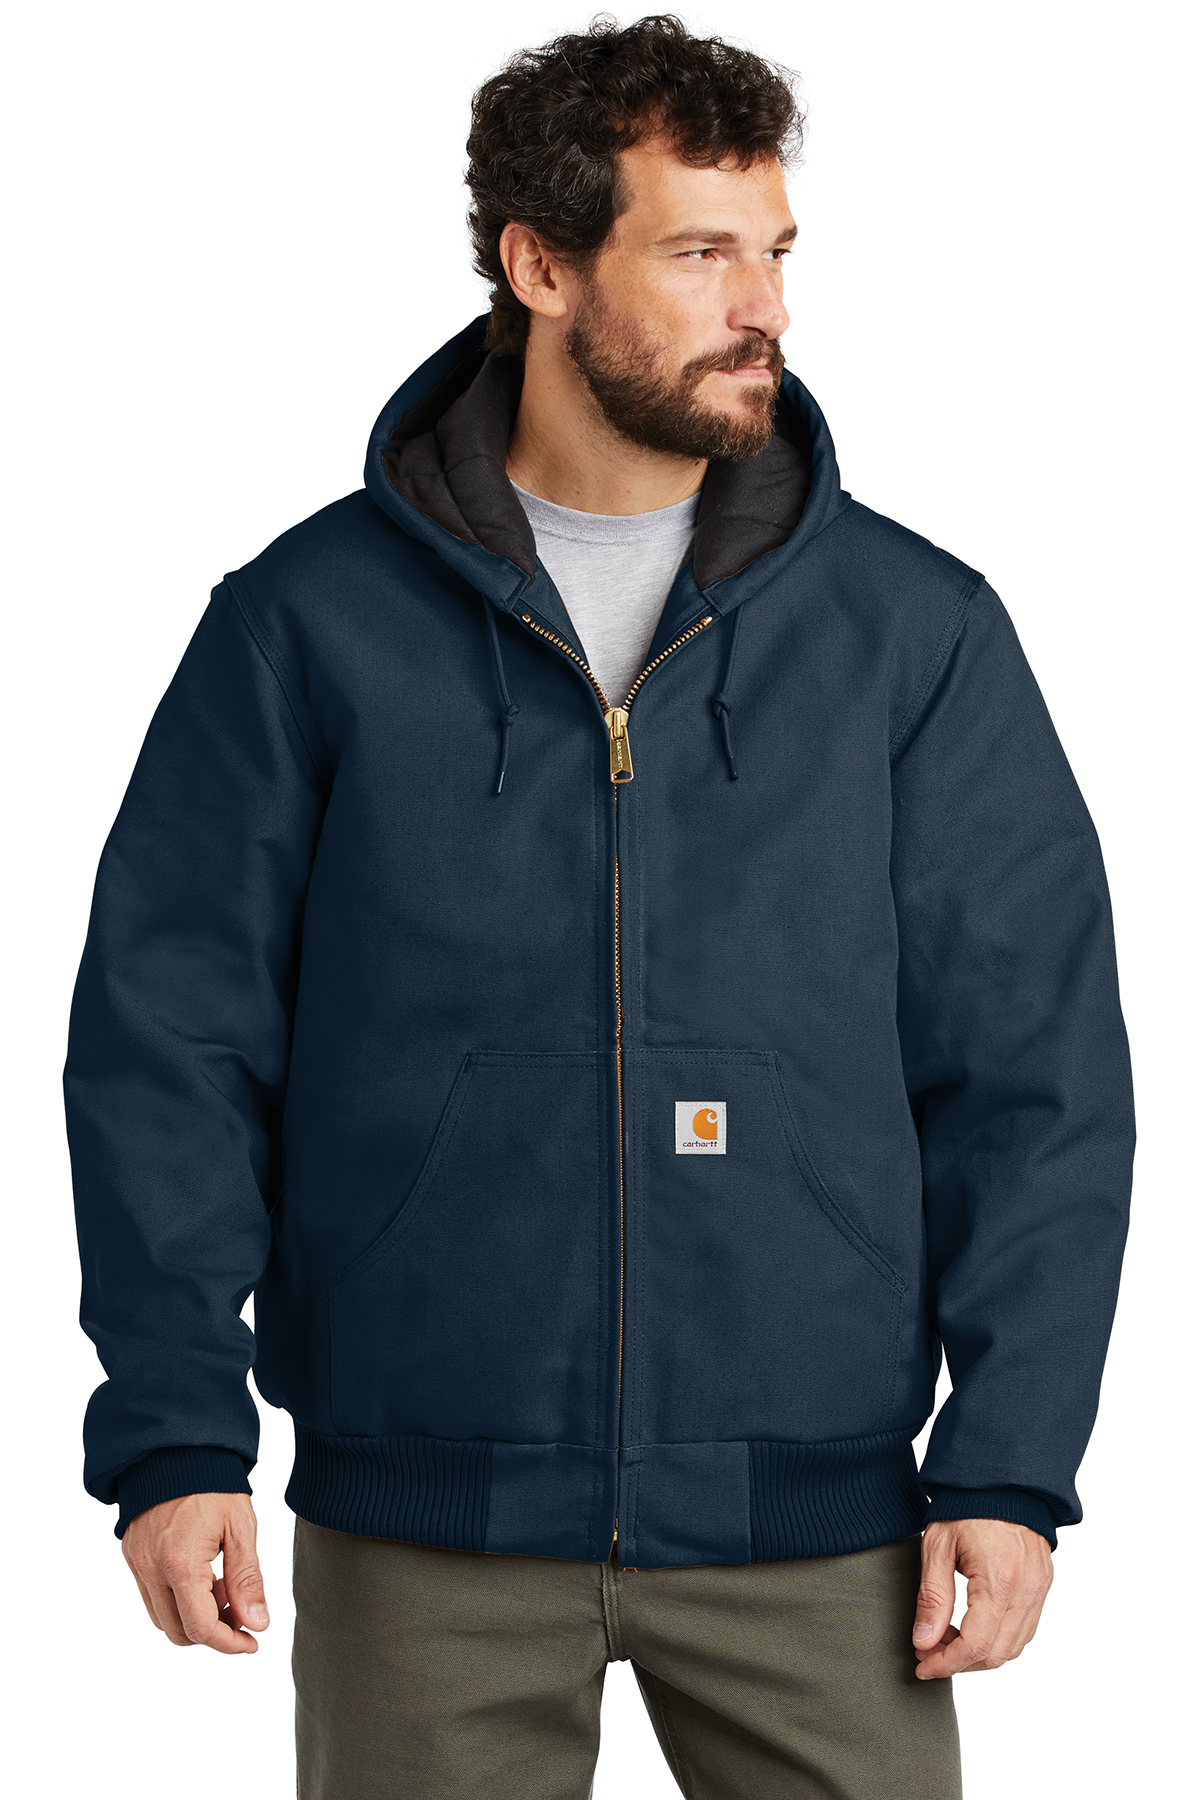 3c01494a97 Carhartt ® Quilted-Flannel-Lined Duck Active Jac | Work Jackets ...